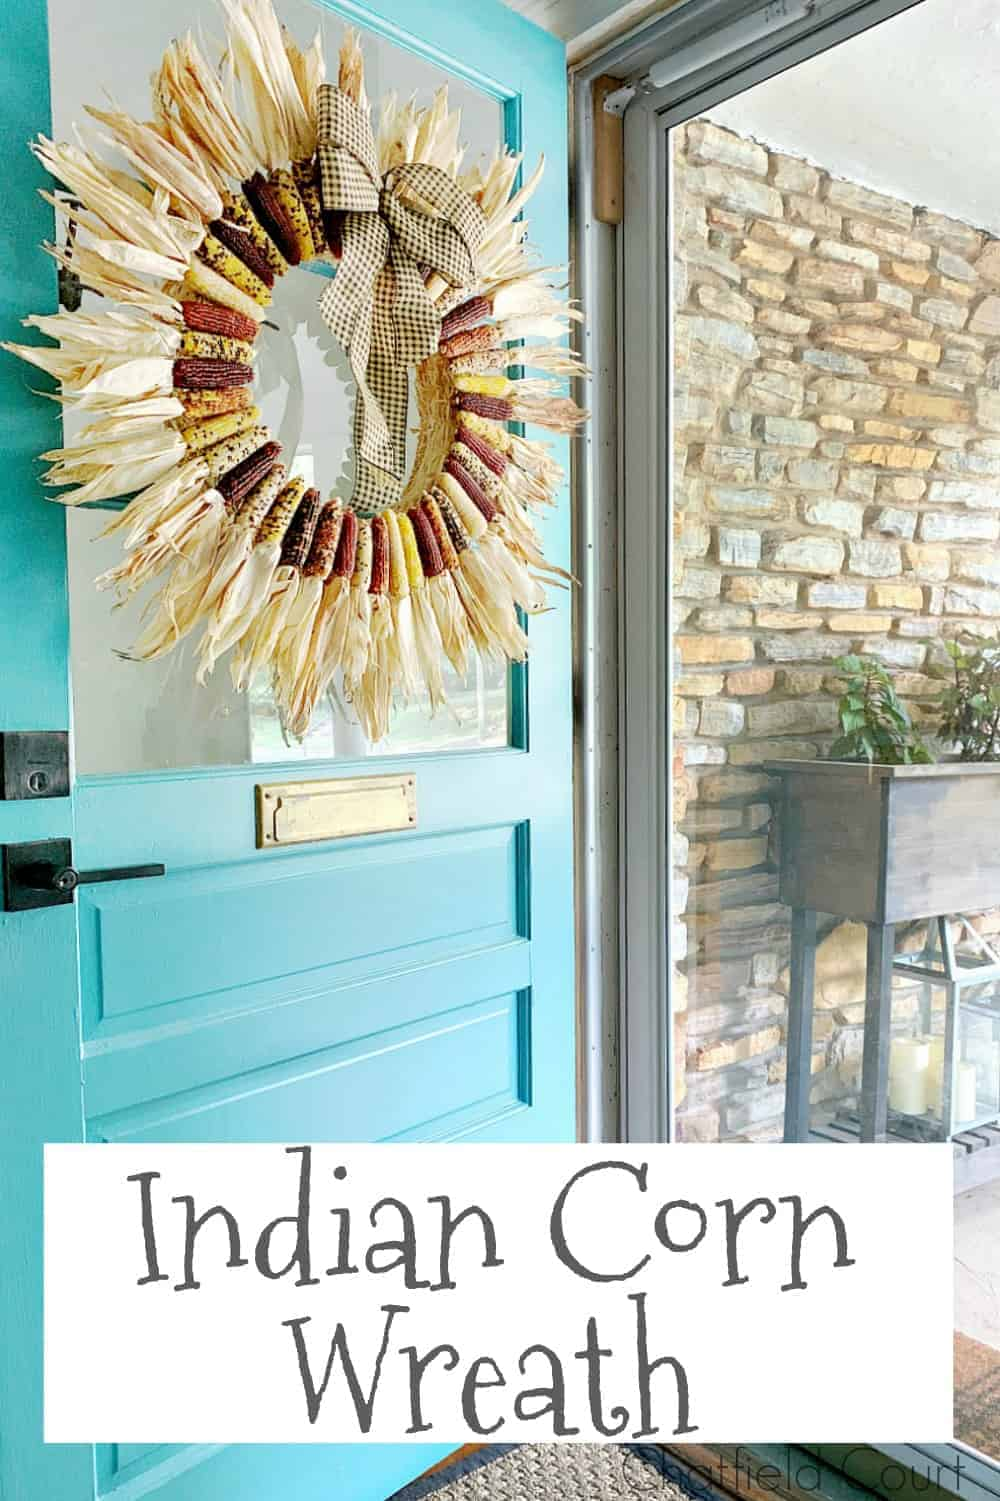 Indian corn wreath hanging on turquoise front door and a large graphic